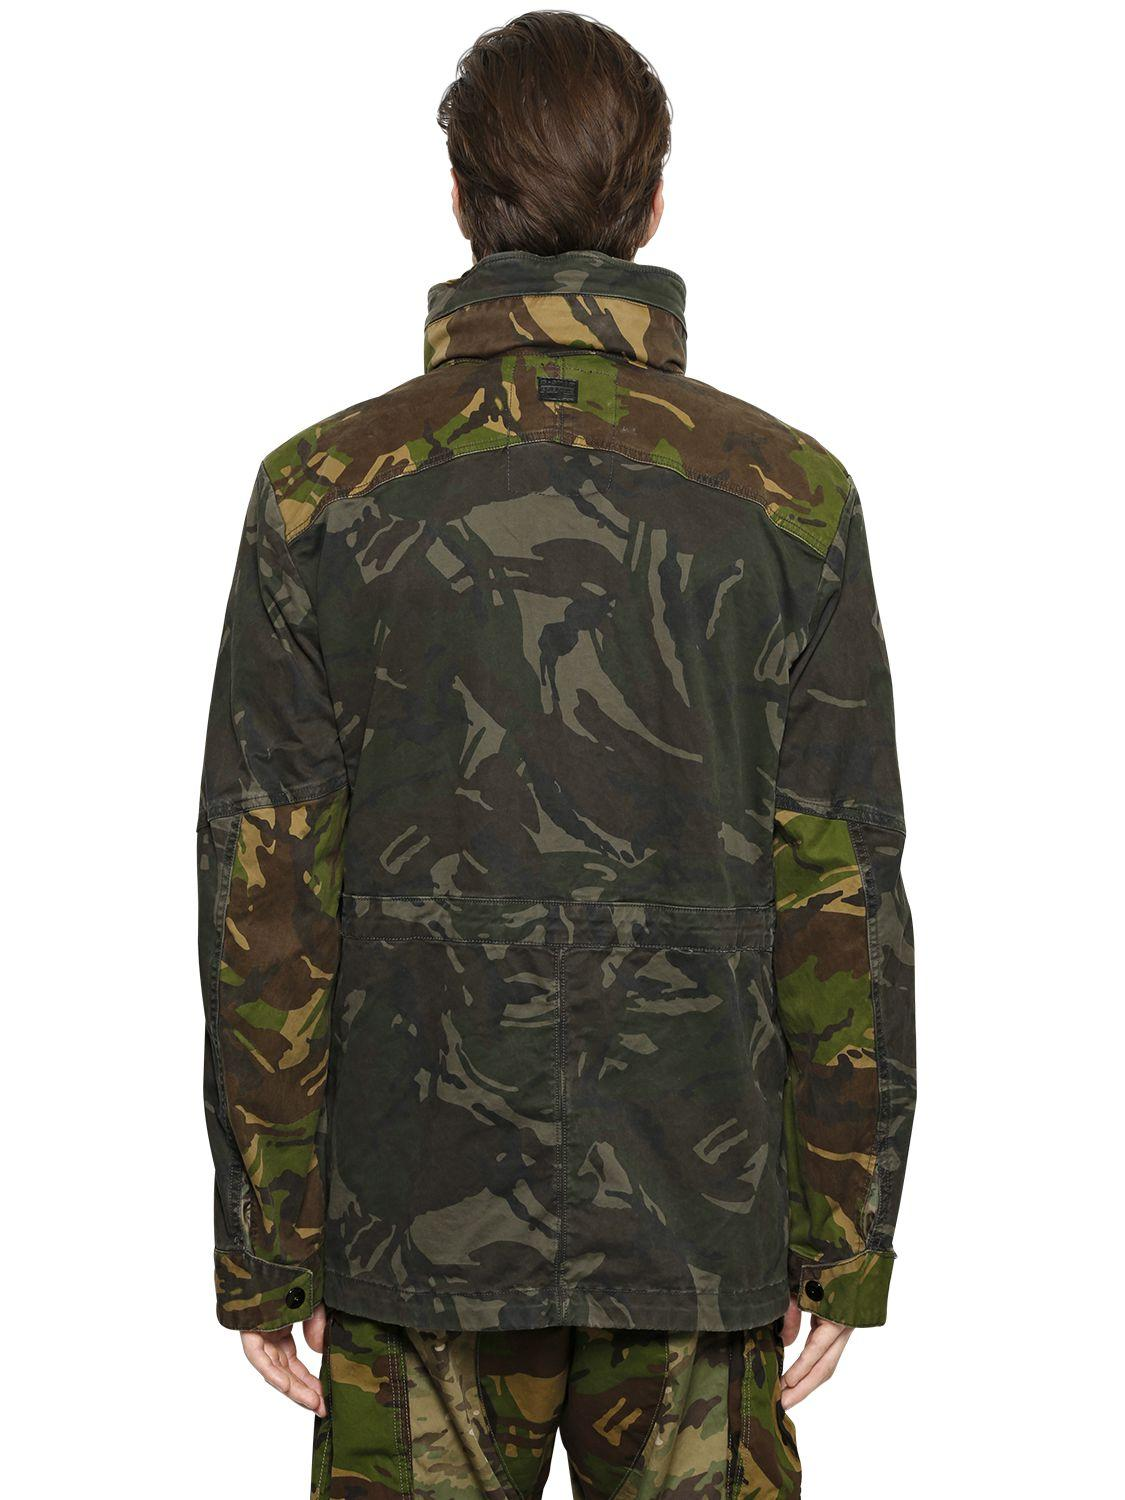 g star raw camo cotton gabardine field jacket in green for men lyst. Black Bedroom Furniture Sets. Home Design Ideas